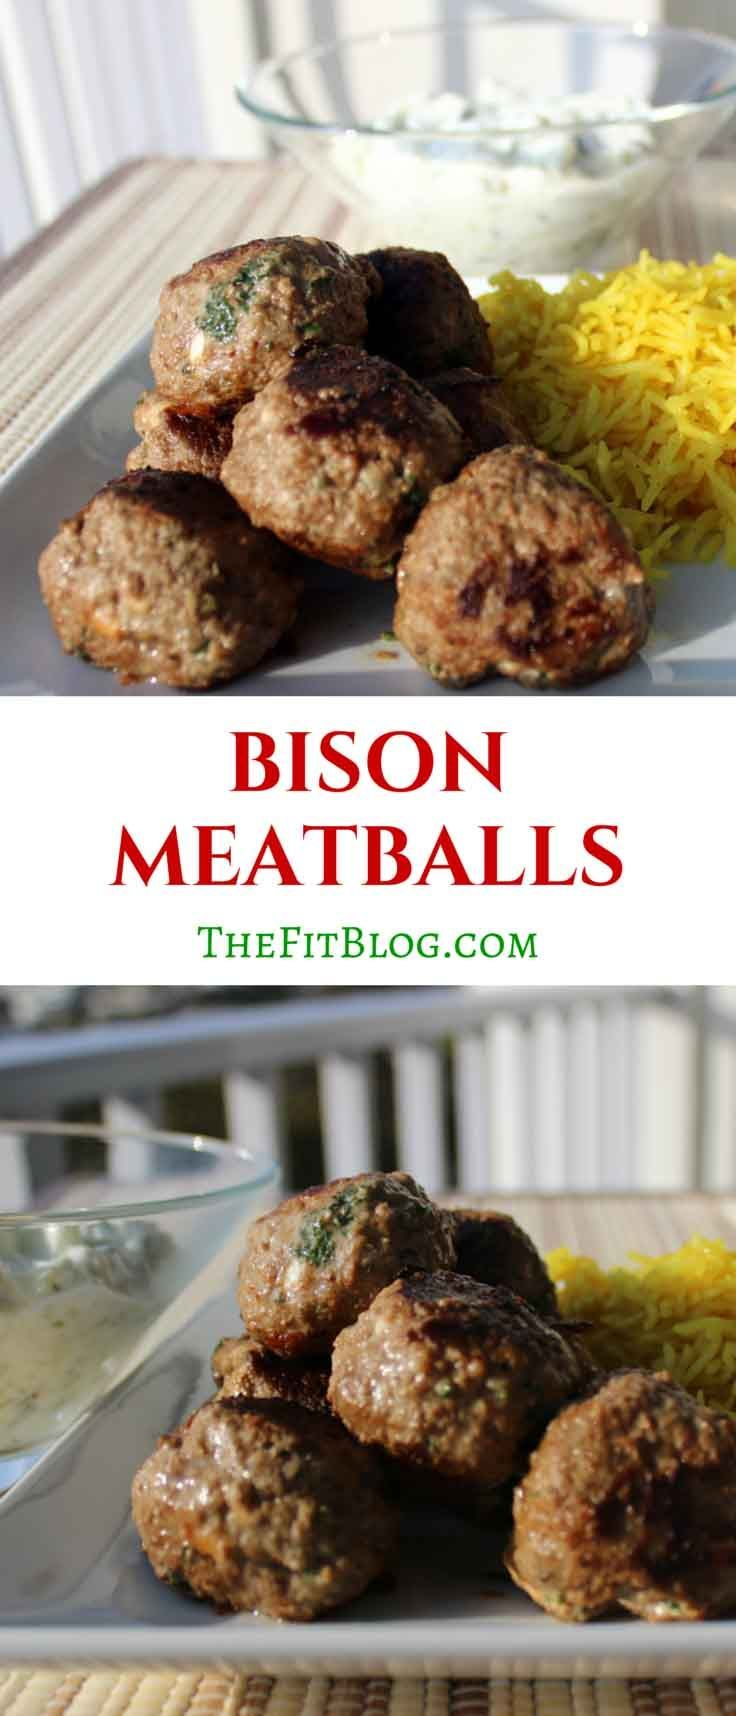 Meatballs are such a great way to prepare protein. These bison meatballs are packed with Mediterranean flavor inspired by some of our many trips to Greece.